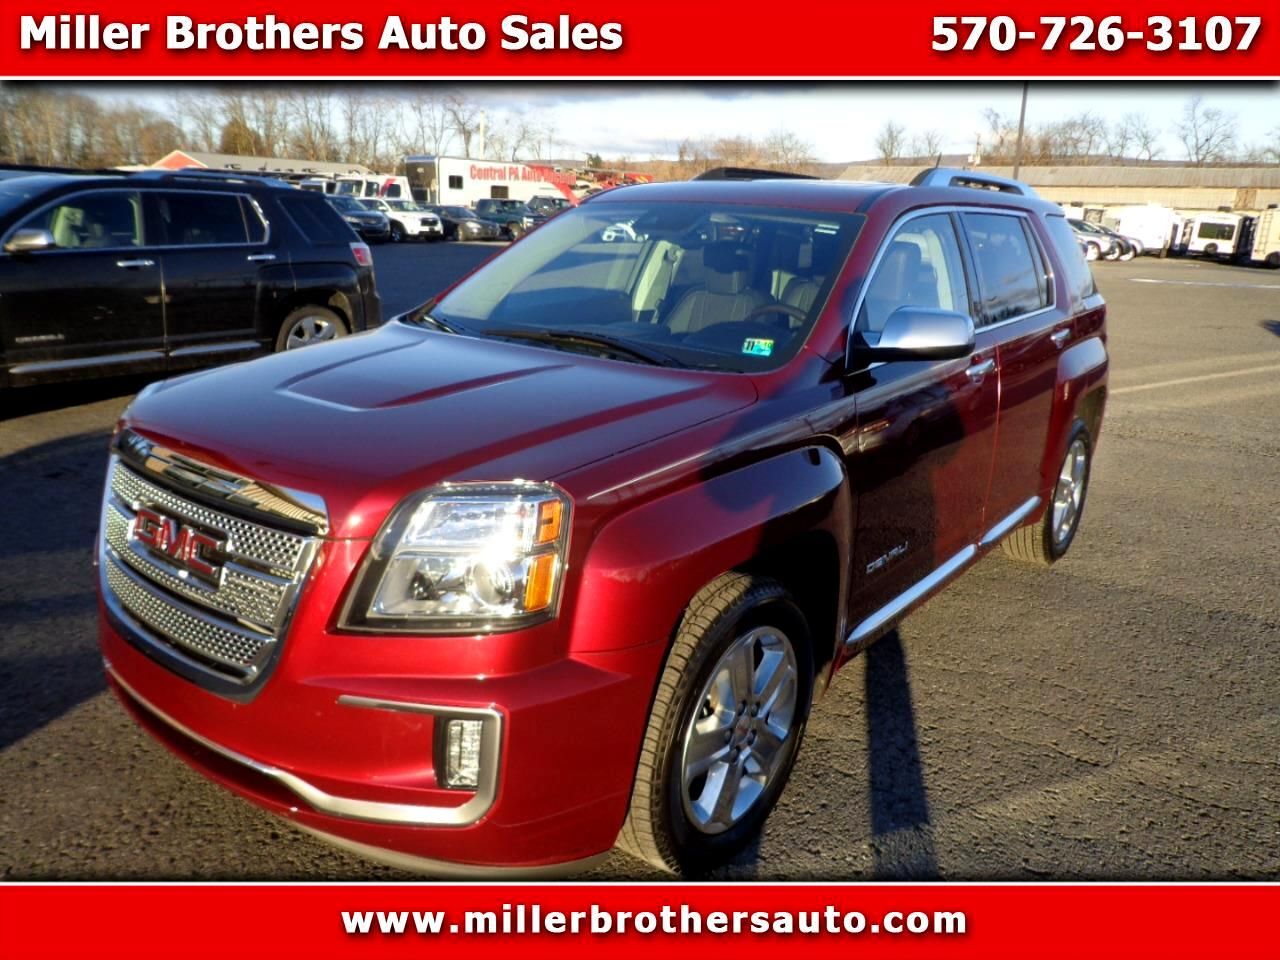 Used Cars For Sale Mill Hall Pa 17751 Miller Brothers Auto Sales 2012 Gmc Terrain Fuel Filter 2017 Awd 4dr Denali